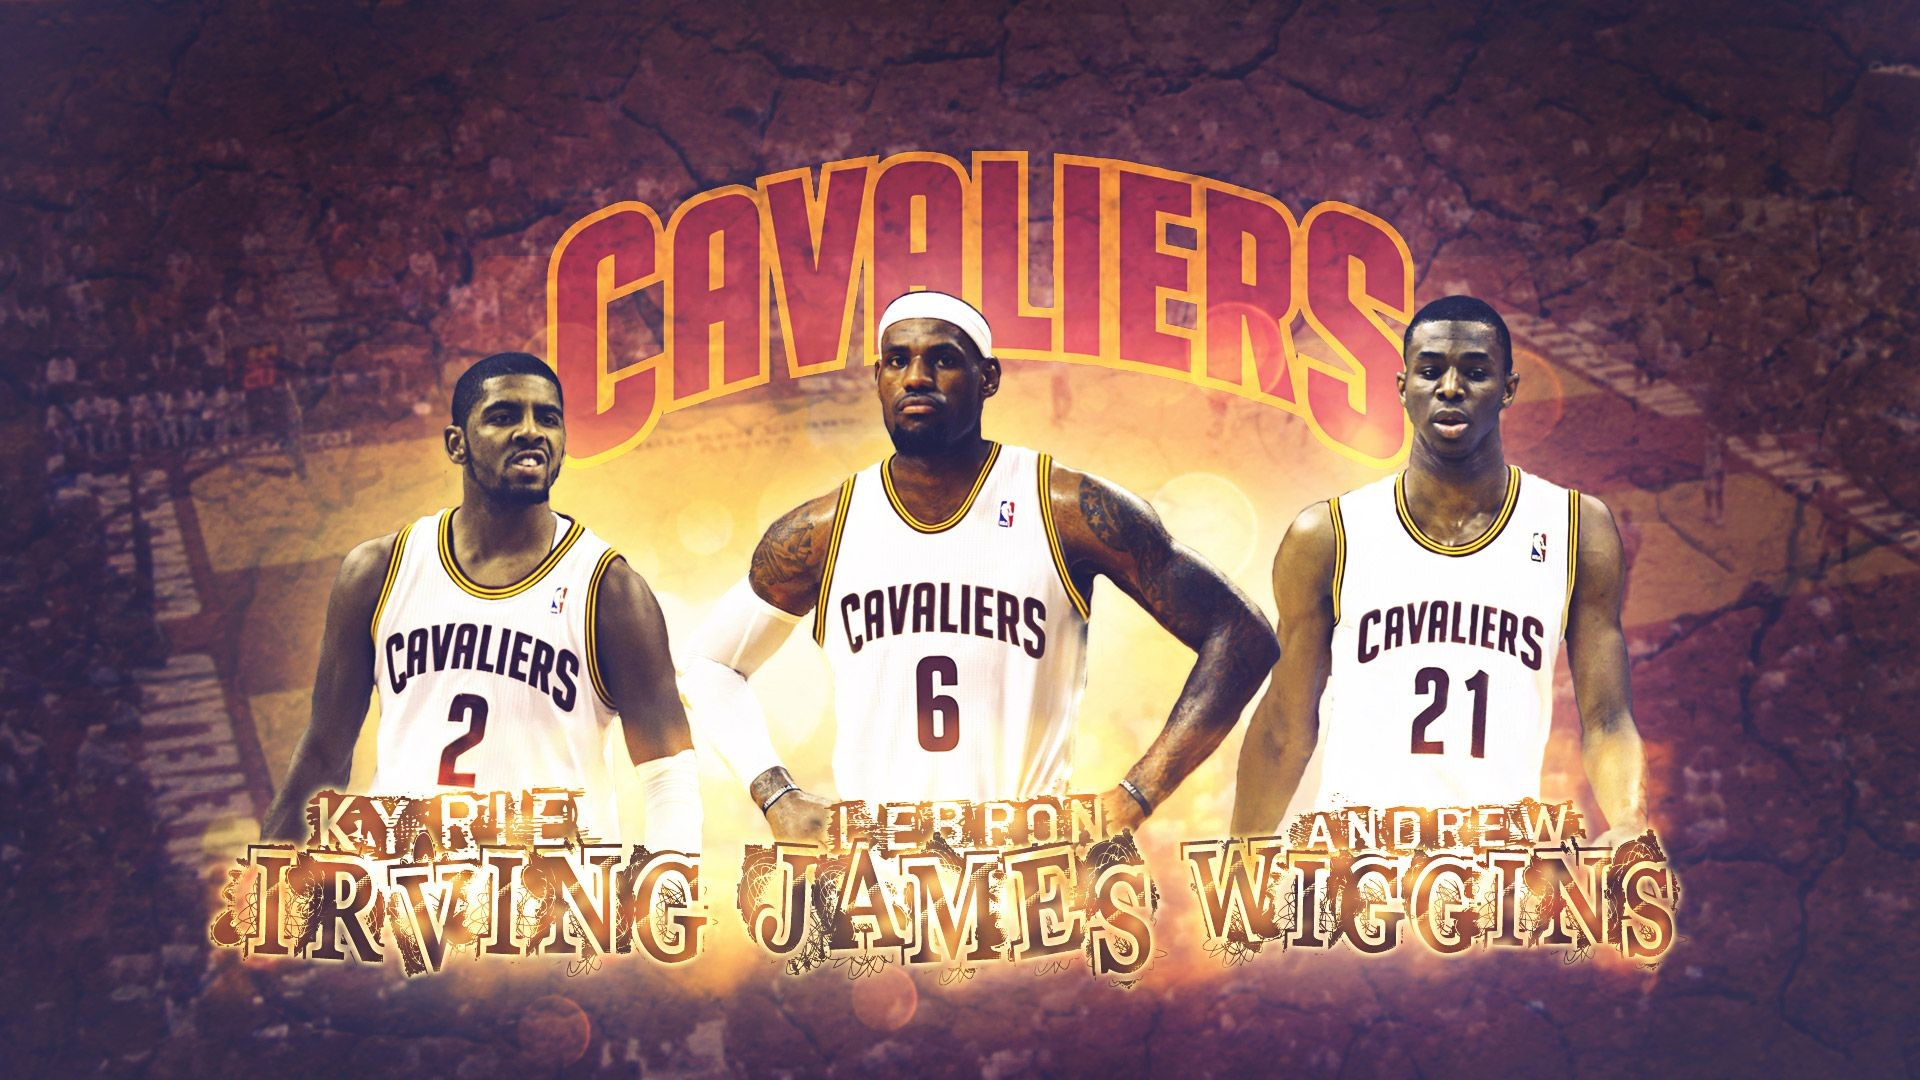 1920x1080 LeBron James Wallpapers Basketball Wallpapers at 1920 1080 Cavaliers  Wallpaper (36 Wallpapers) |